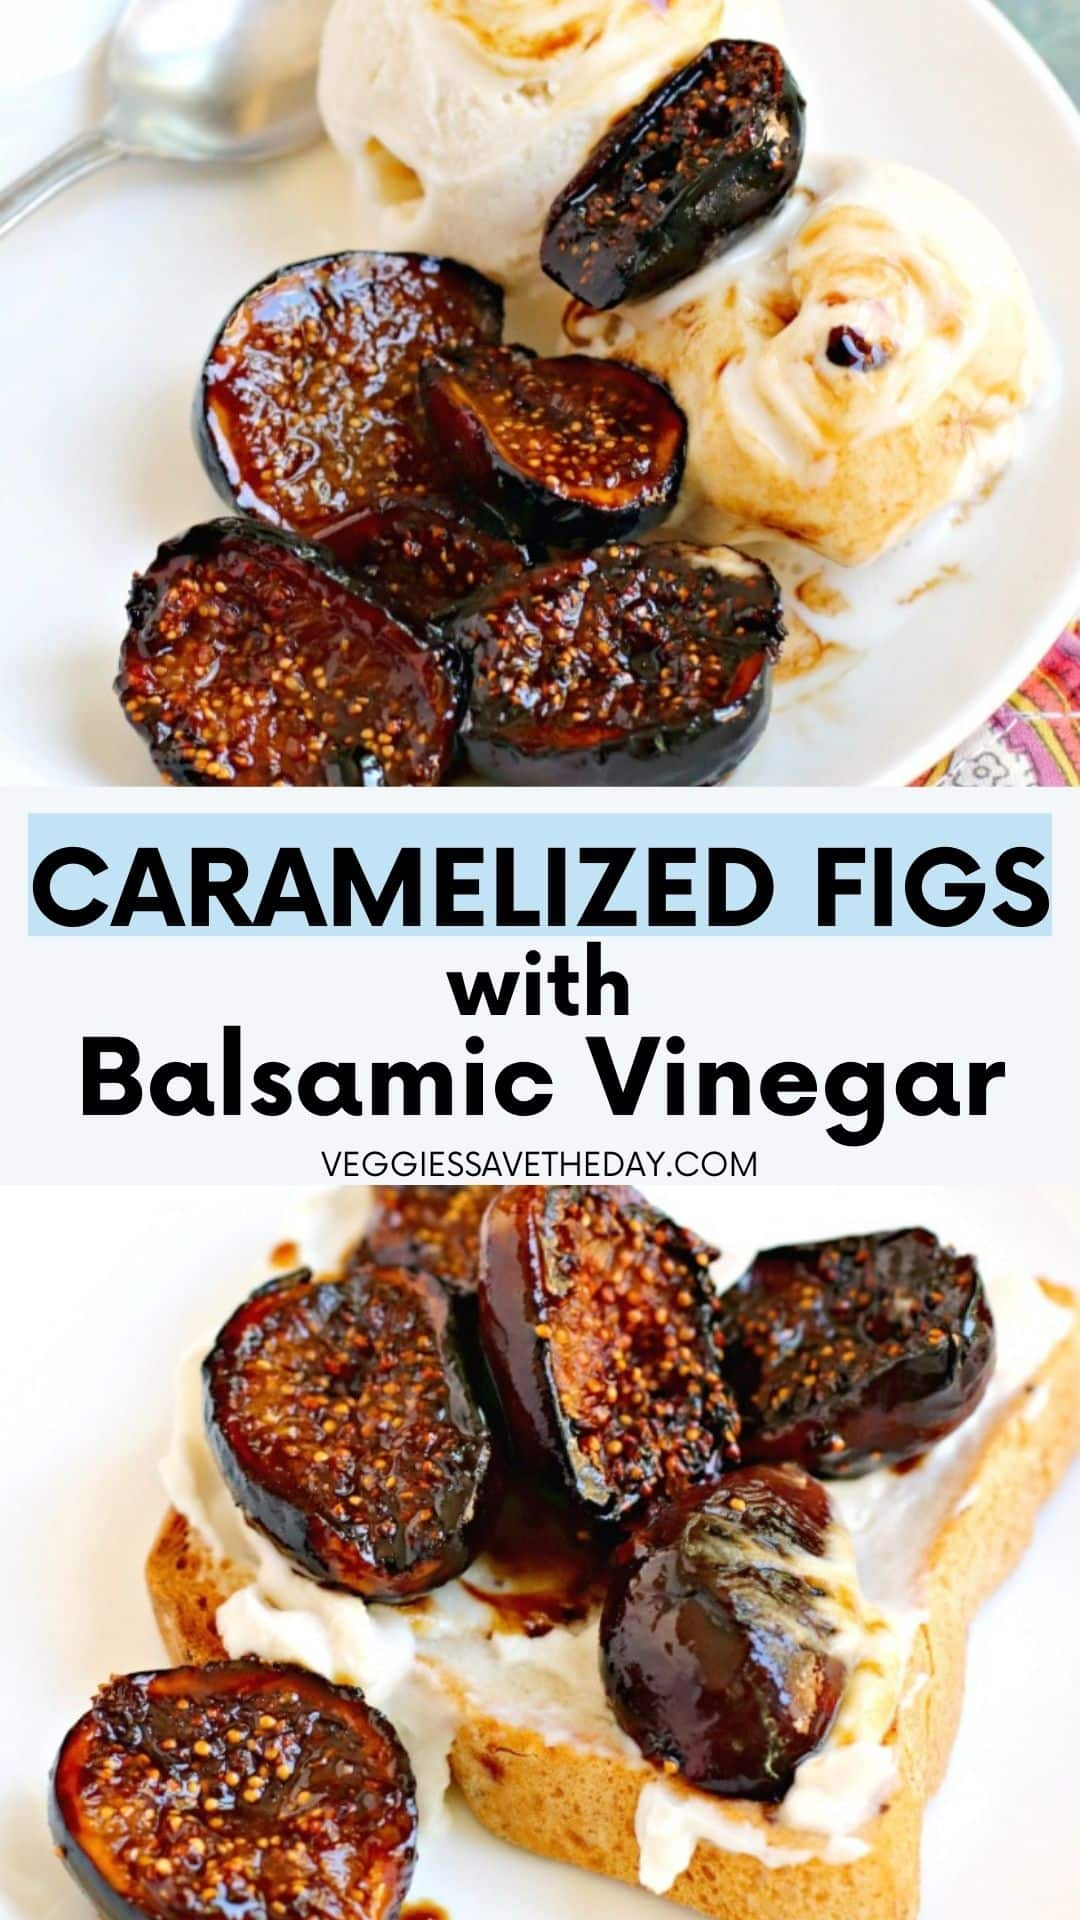 Caramelized figs with vanilla ice cream and on toast with cream cheese